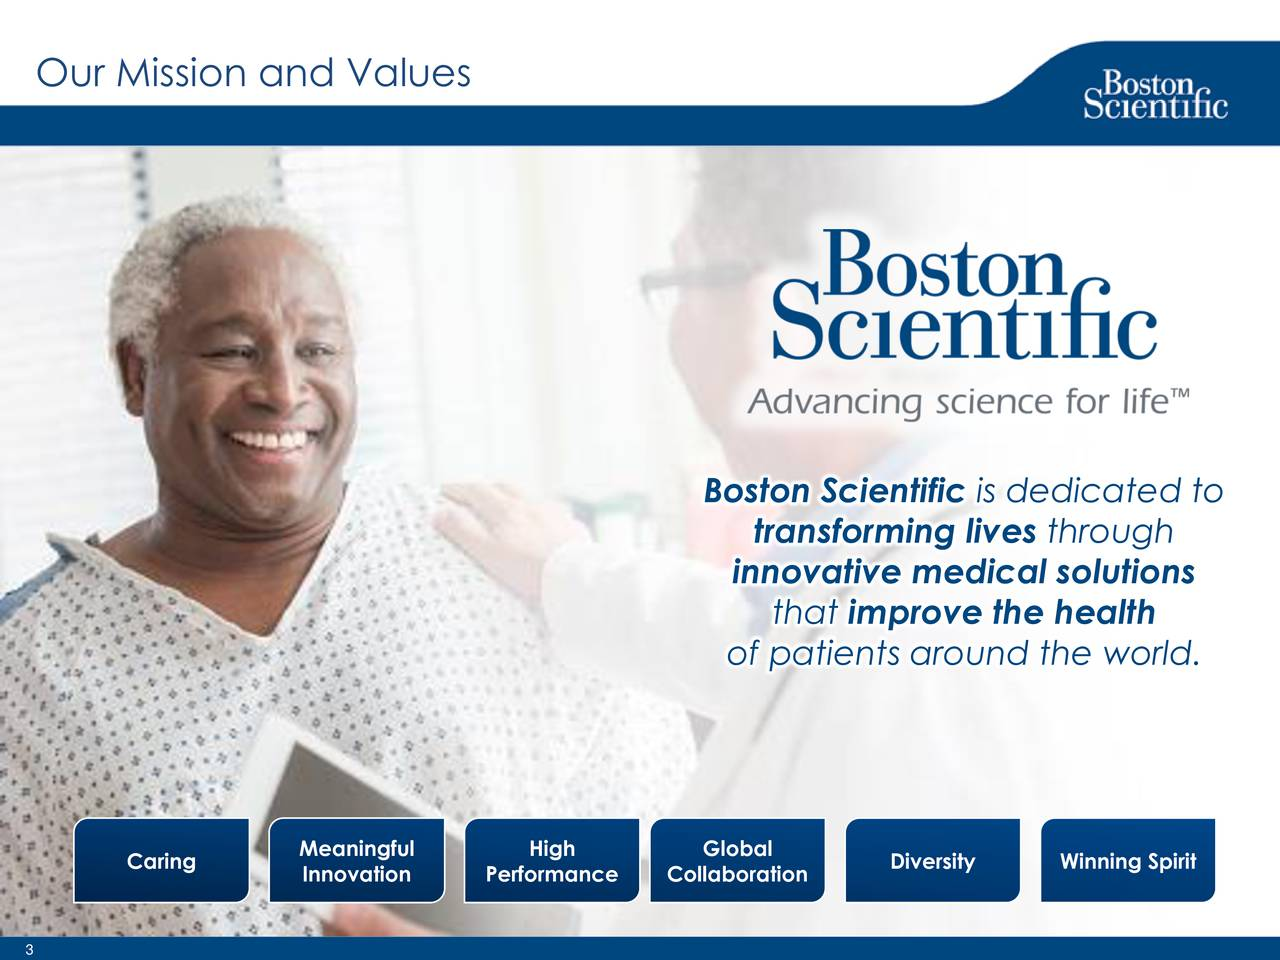 Boston Scientific is dedicated to transforming lives through innovative medical solutions that improve the health of patients around the world. Caring Meaningful High Global Diversity Winning Spirit Innovation Performance Collaboration